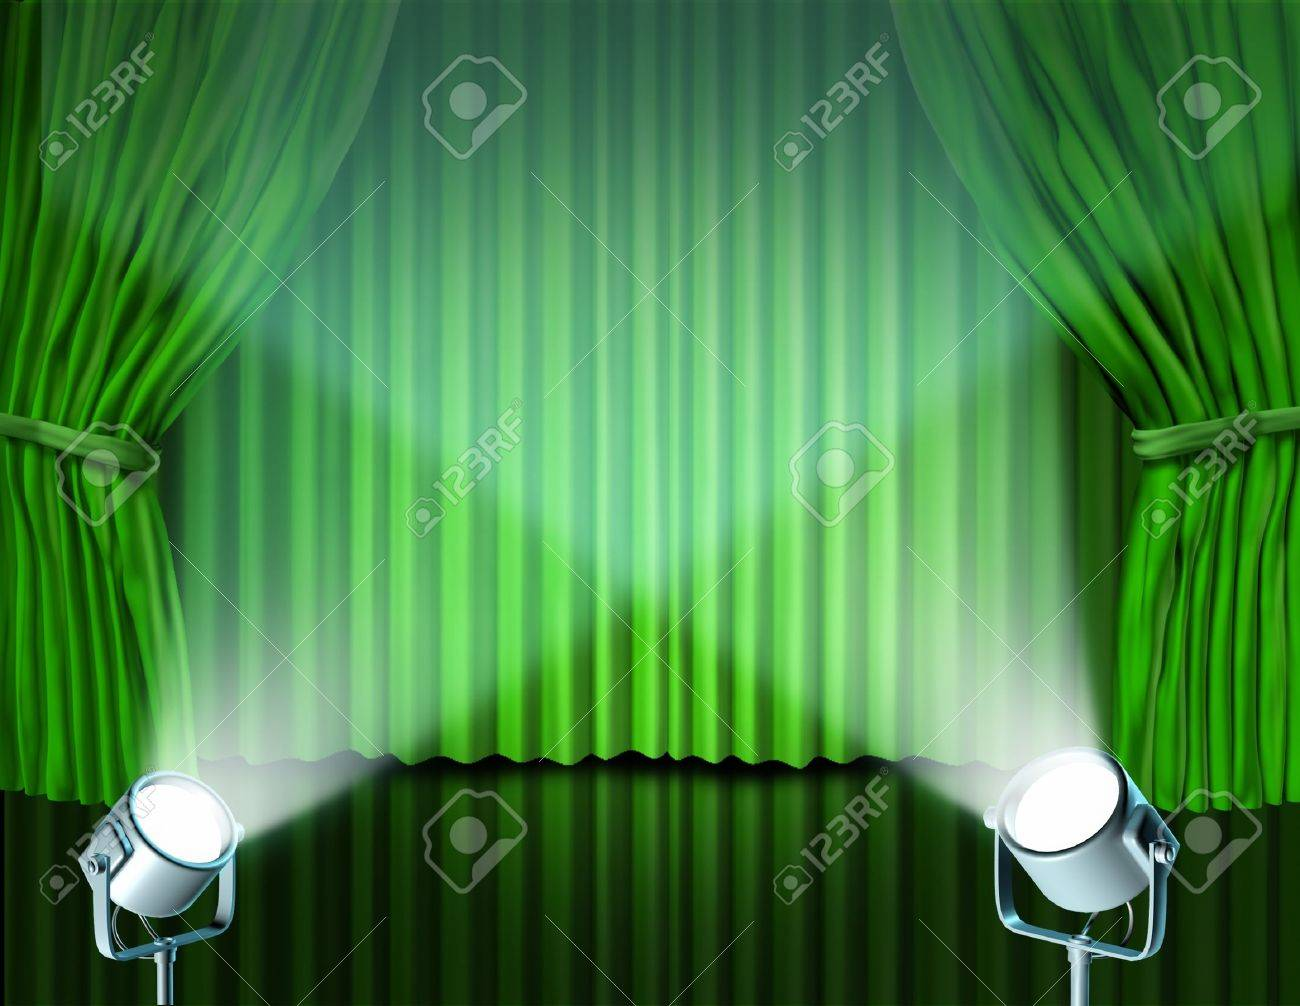 Green stage curtains - Theater Stage With Spotlights On Green Velvet Cinema Curtain And Drapes Representing The Entertainment Communications Concept